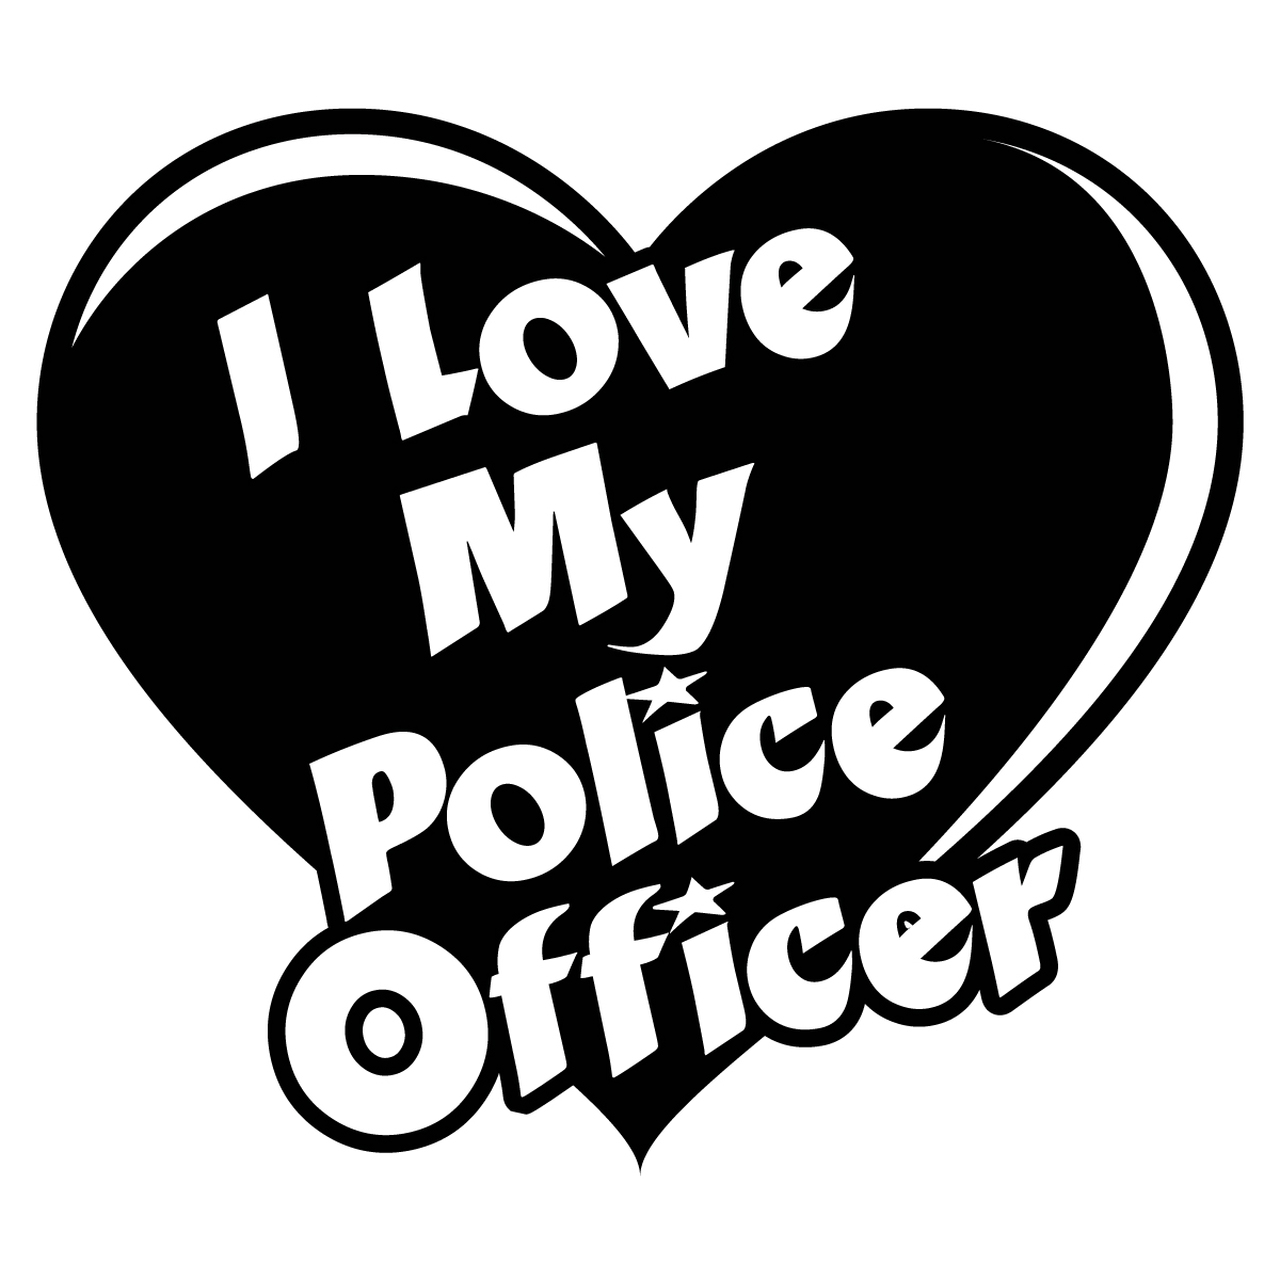 Maine probation parole officer badge clipart black and white image transparent library I Love My Police Officer Heart Decal image transparent library